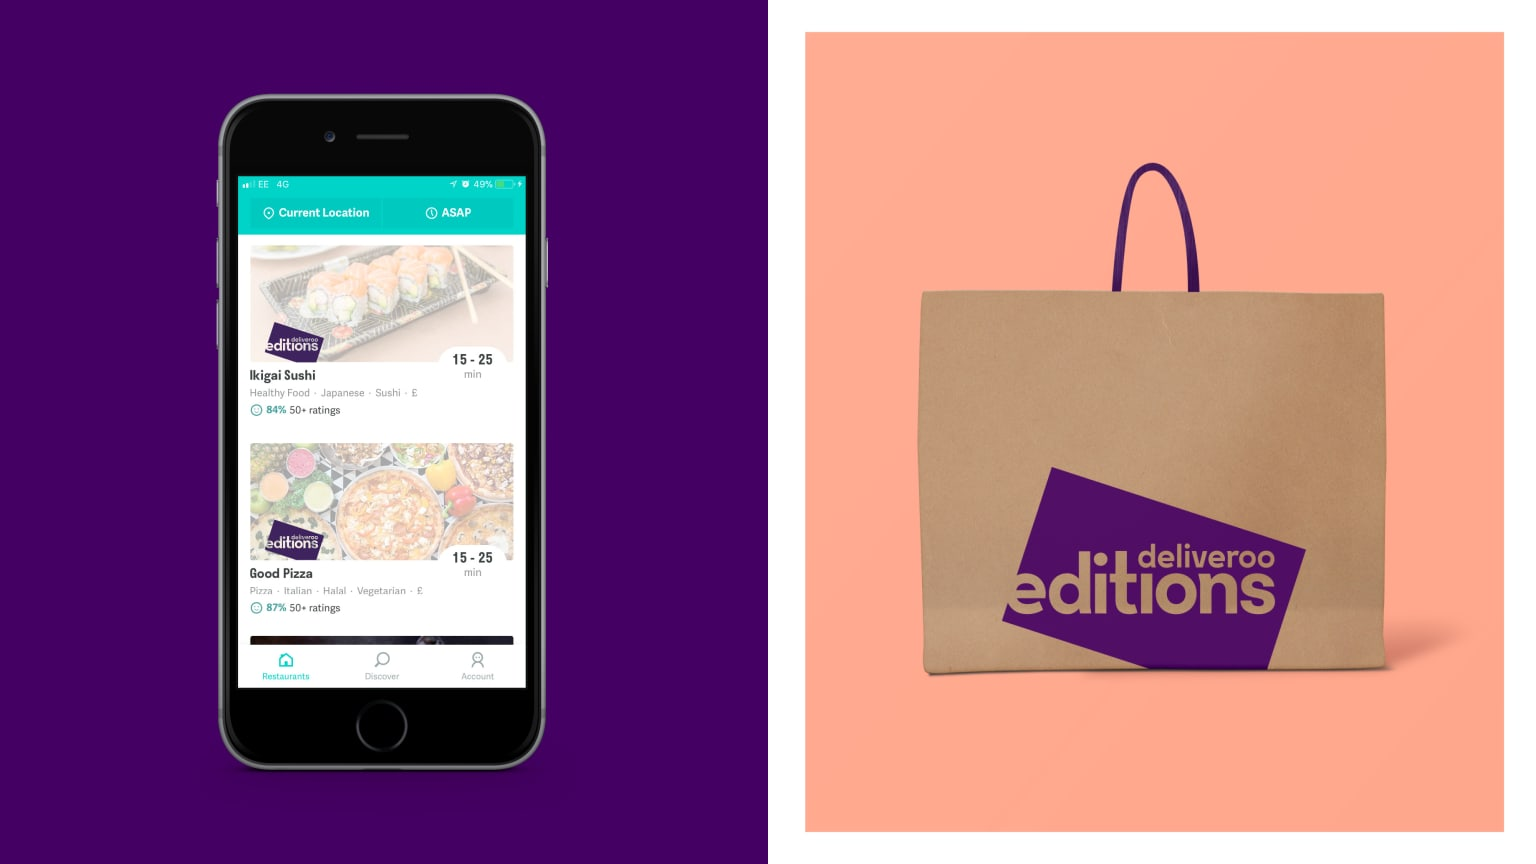 Deliveroo Editions: brand identity & launch